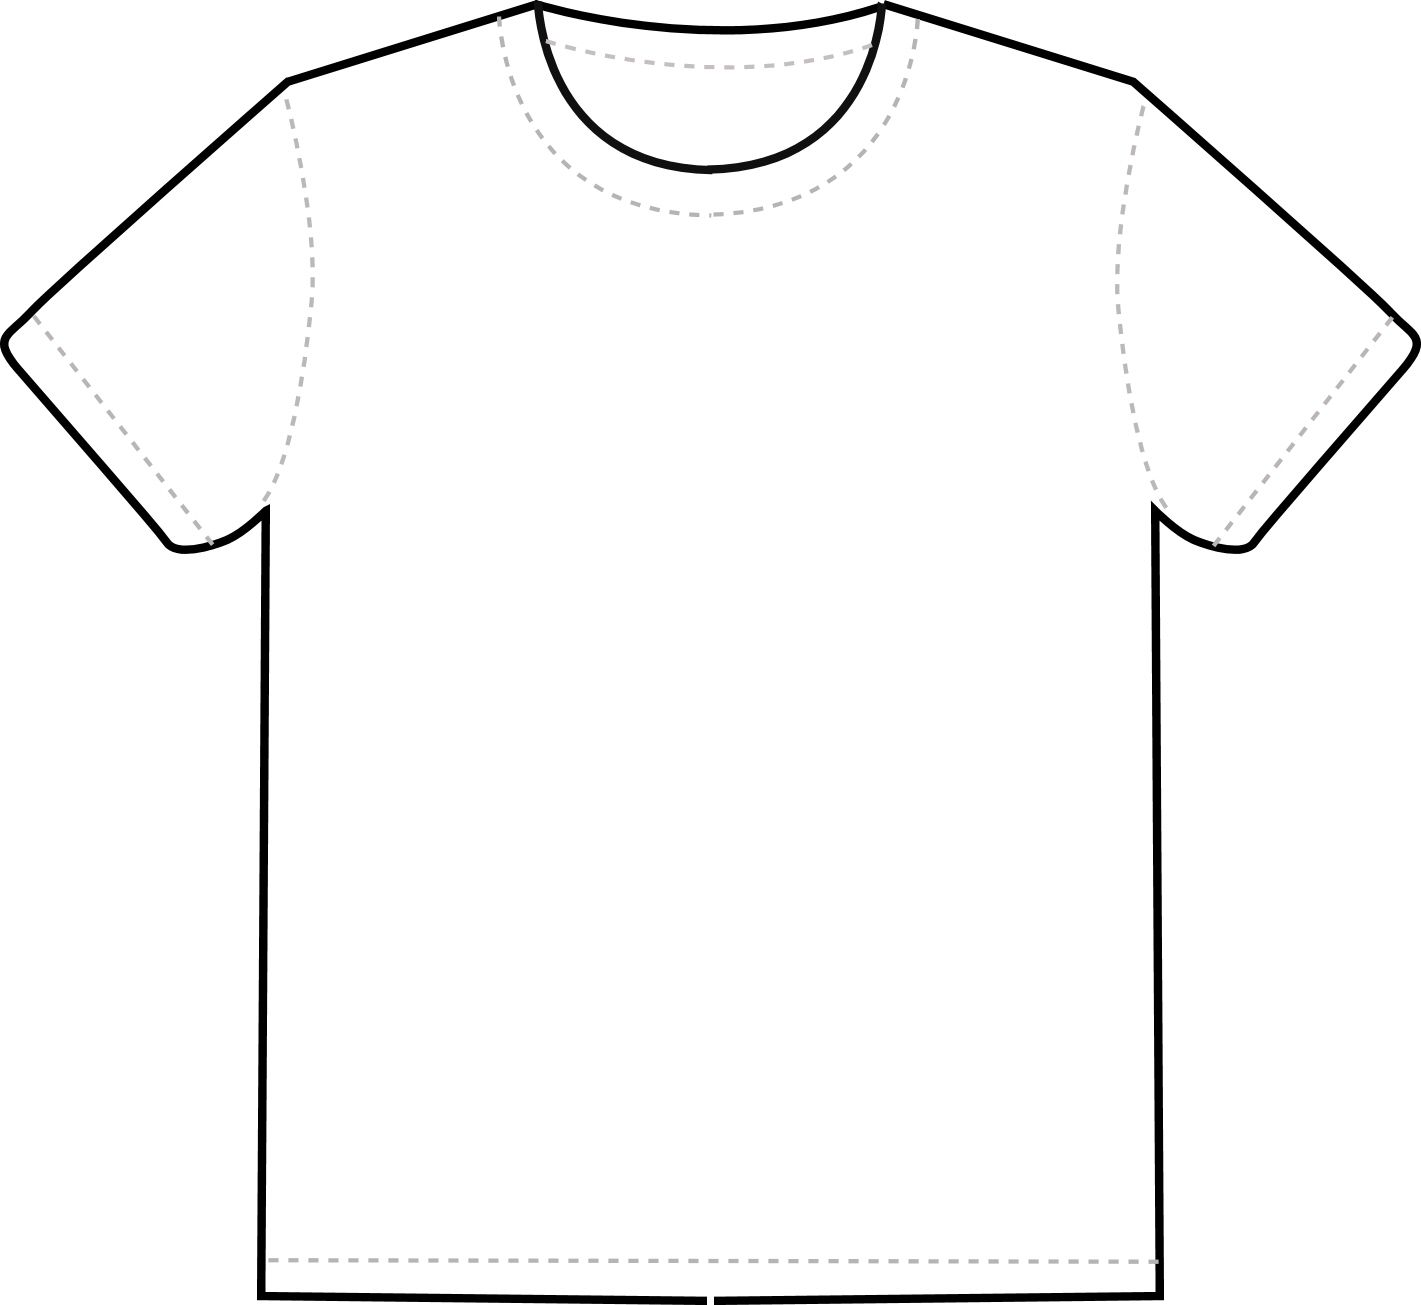 t shirt outline clipart clipart best clipart best t. Black Bedroom Furniture Sets. Home Design Ideas